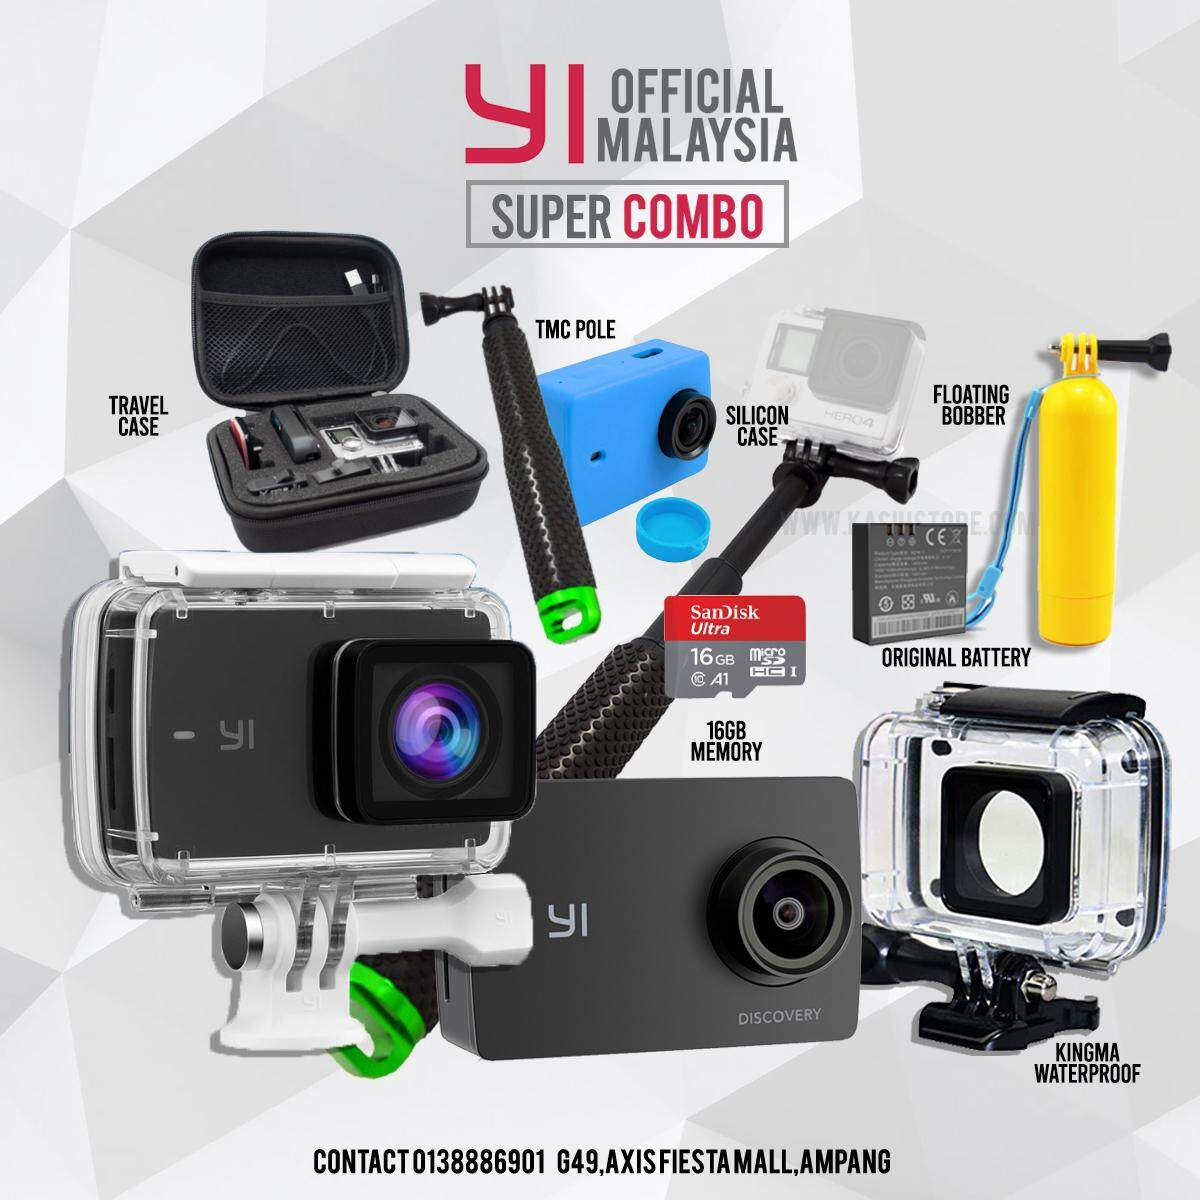 [OFFICIAL YI MALAYSIA] YI Discovery Action Camera COMBO CRAZY DEALS